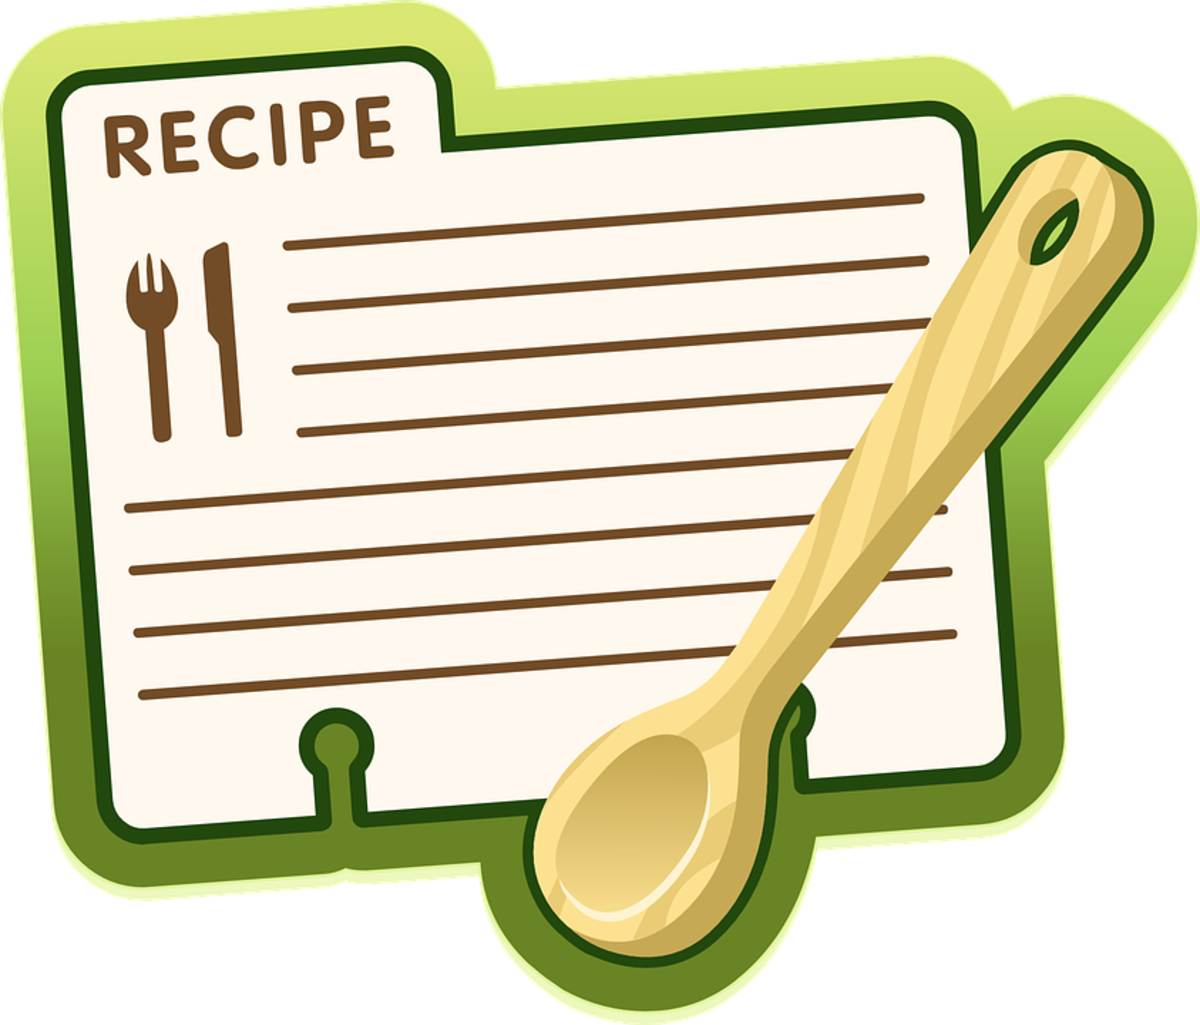 MULTIPLE SOLUTIONS FOR RECIPE ORGANIZATION